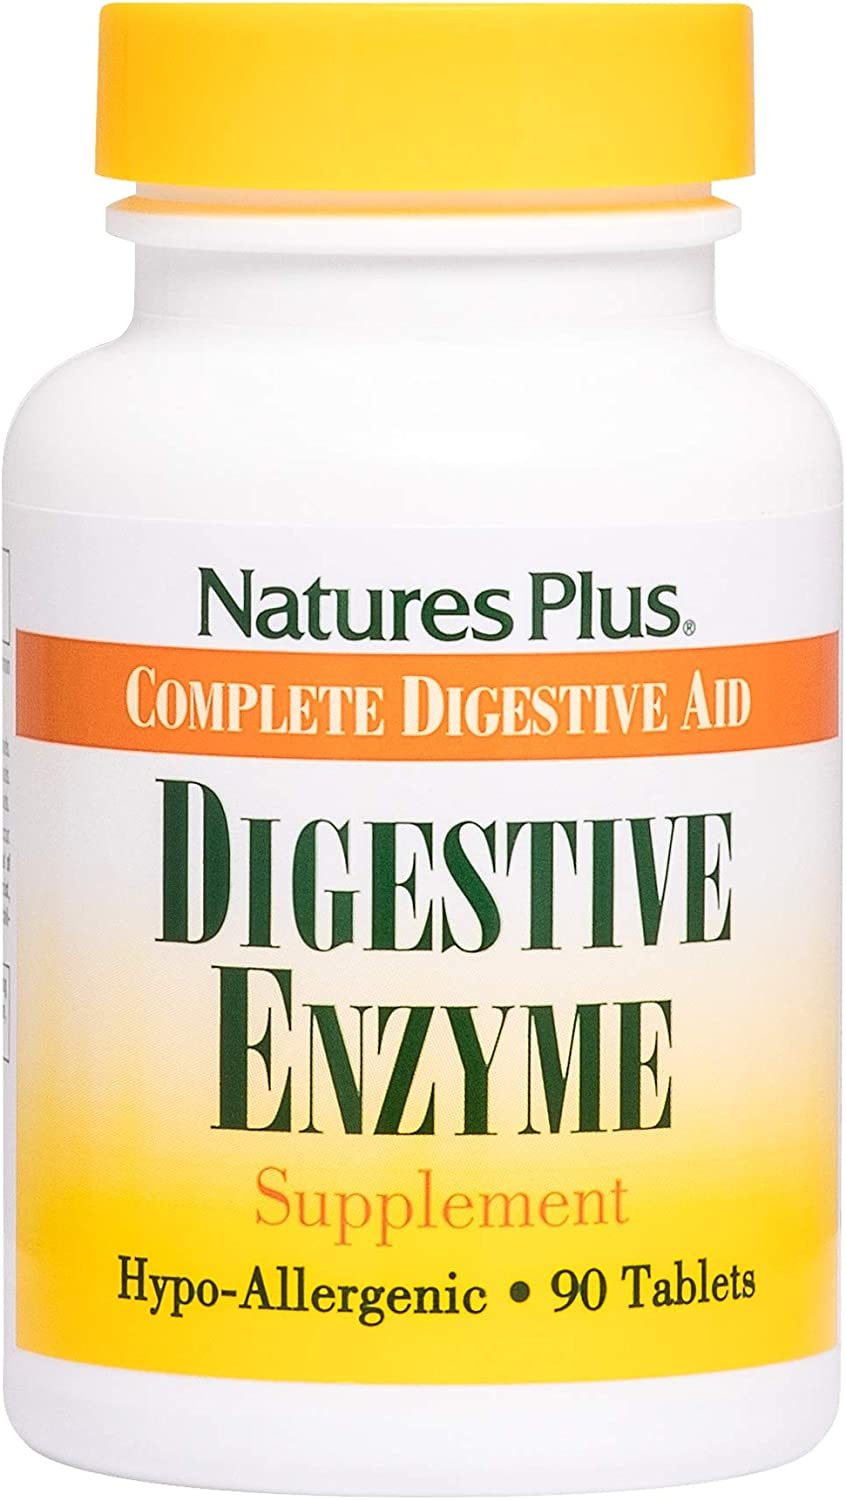 NaturesPlus Digestive Enzyme - 129 mg Pancreatin, 90 Tablets - Healthy Digestion Support with Papain - Aids in Breakdown of Starch, Protein & Fat - Hypoallergenic - 90 Servings